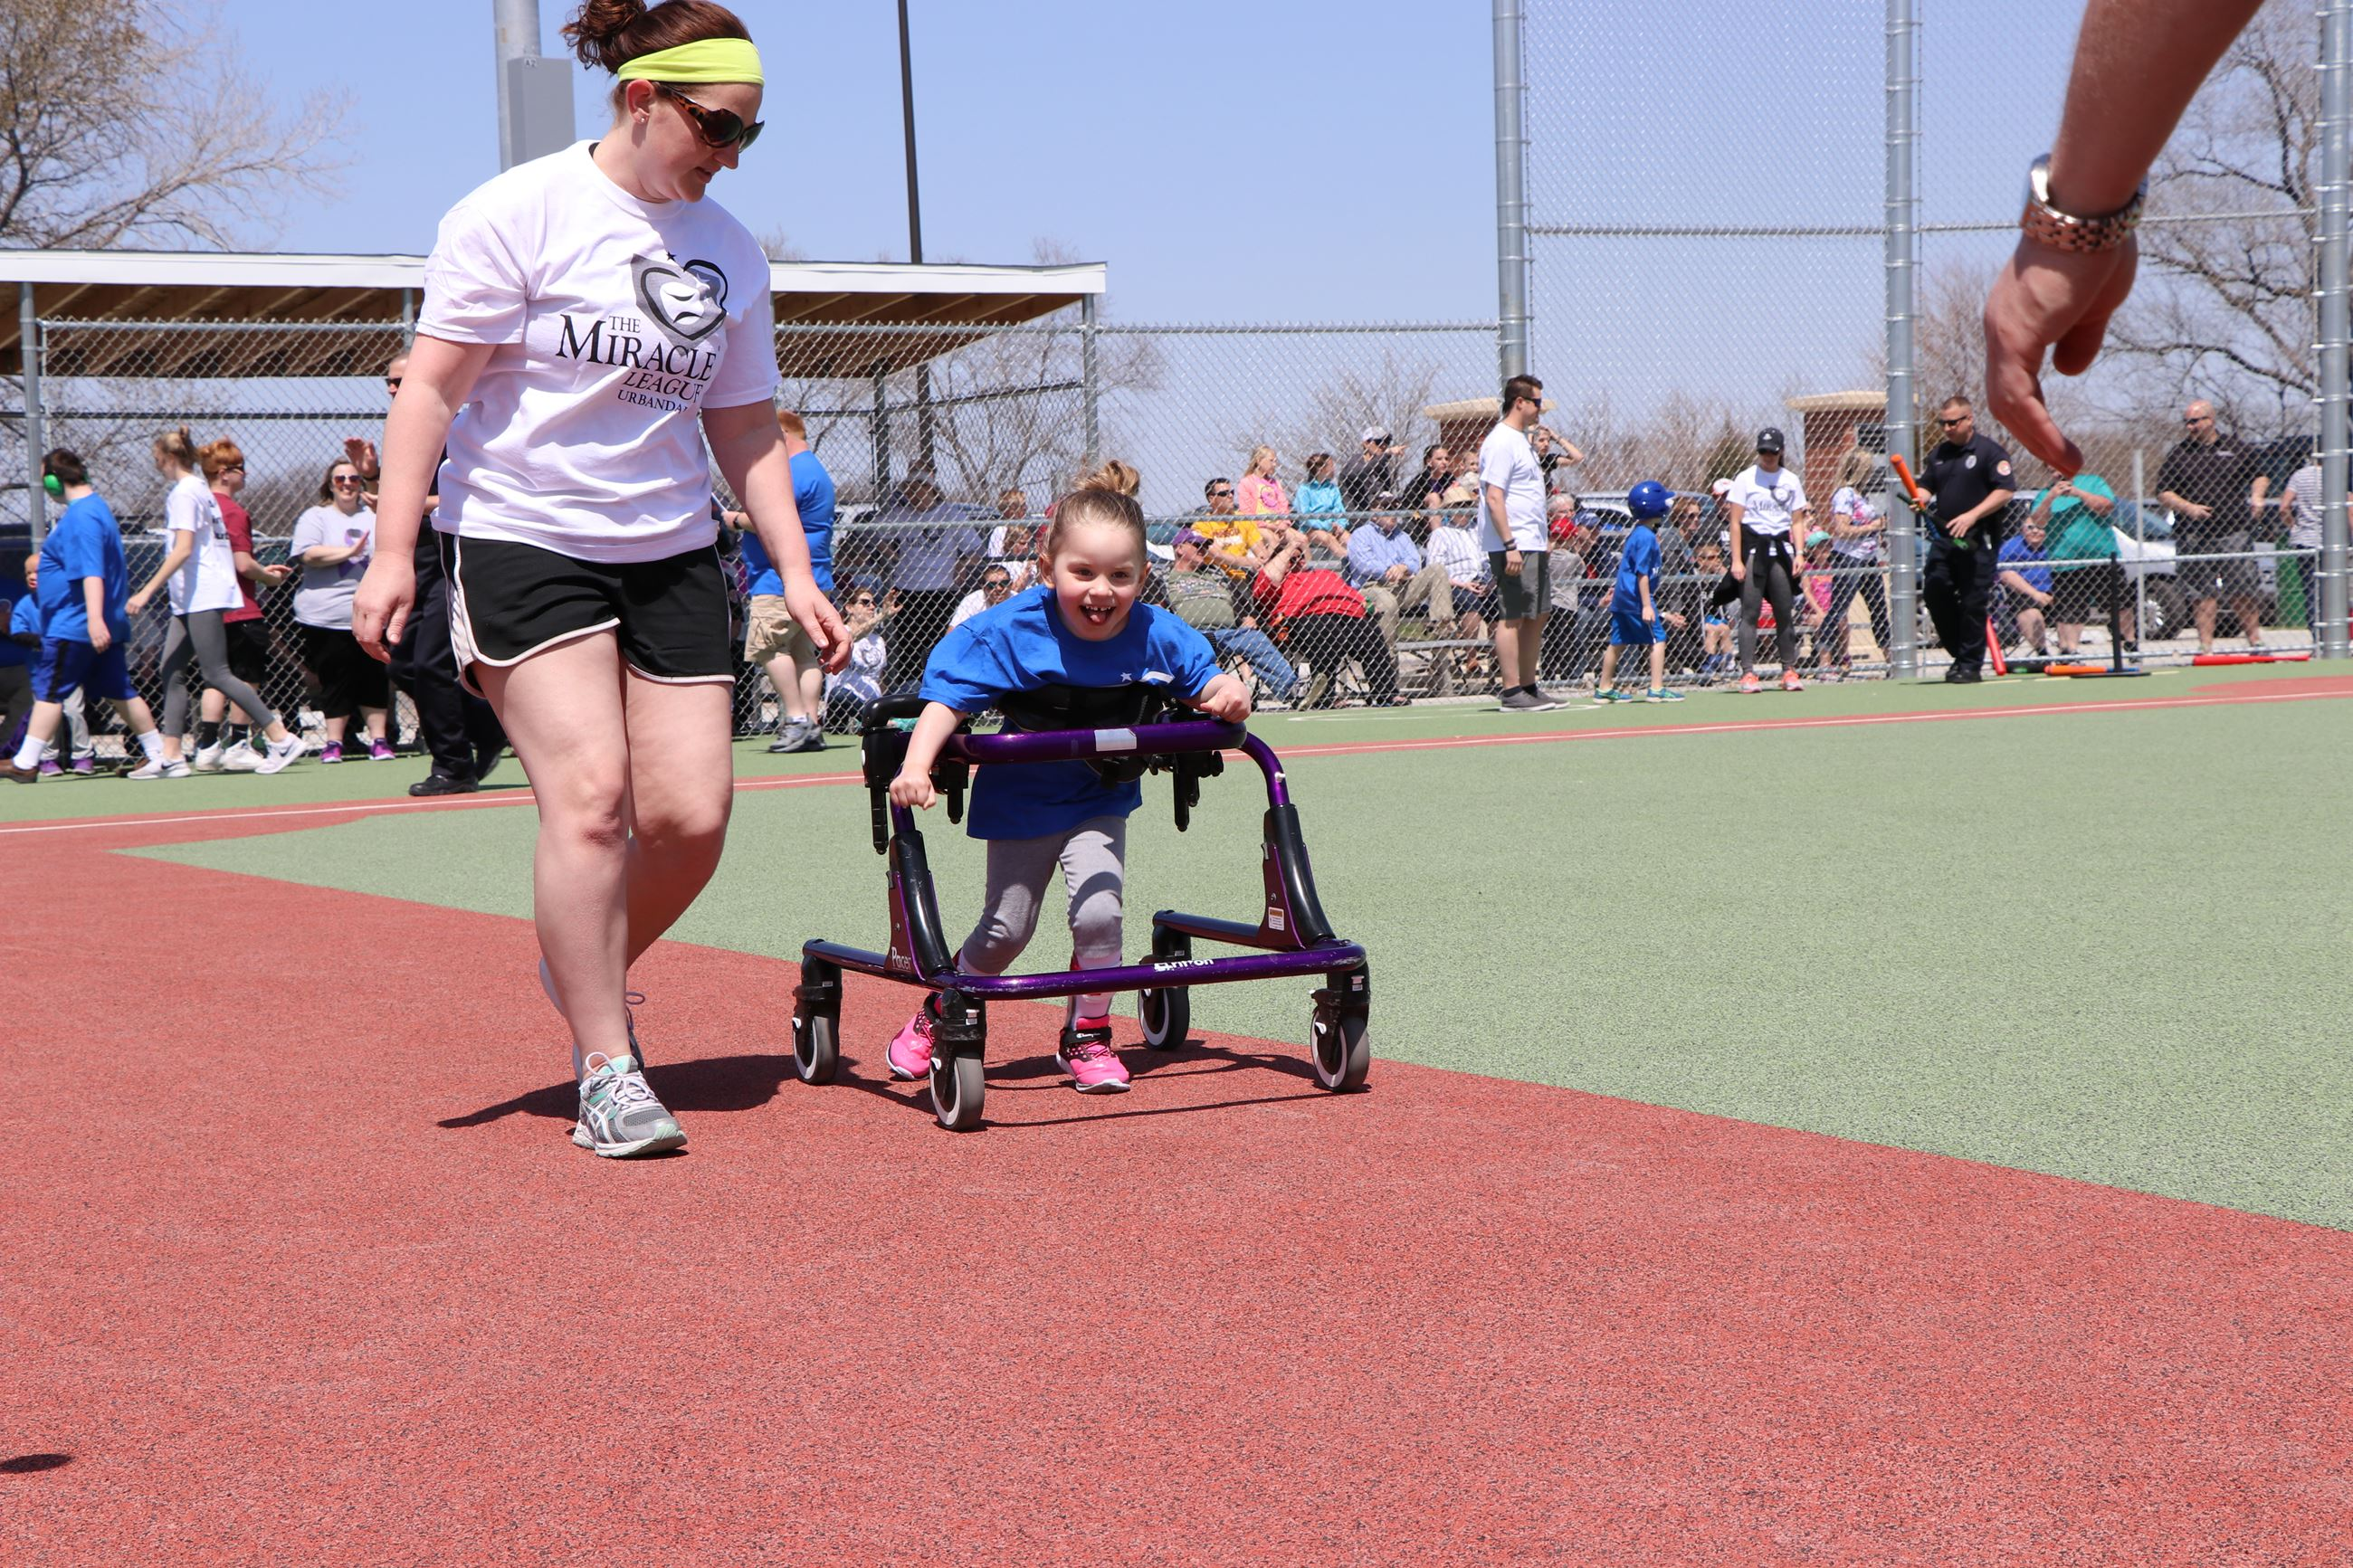 Photo of participant and volunteer racing to second base at the Urbandale Miracle League Field